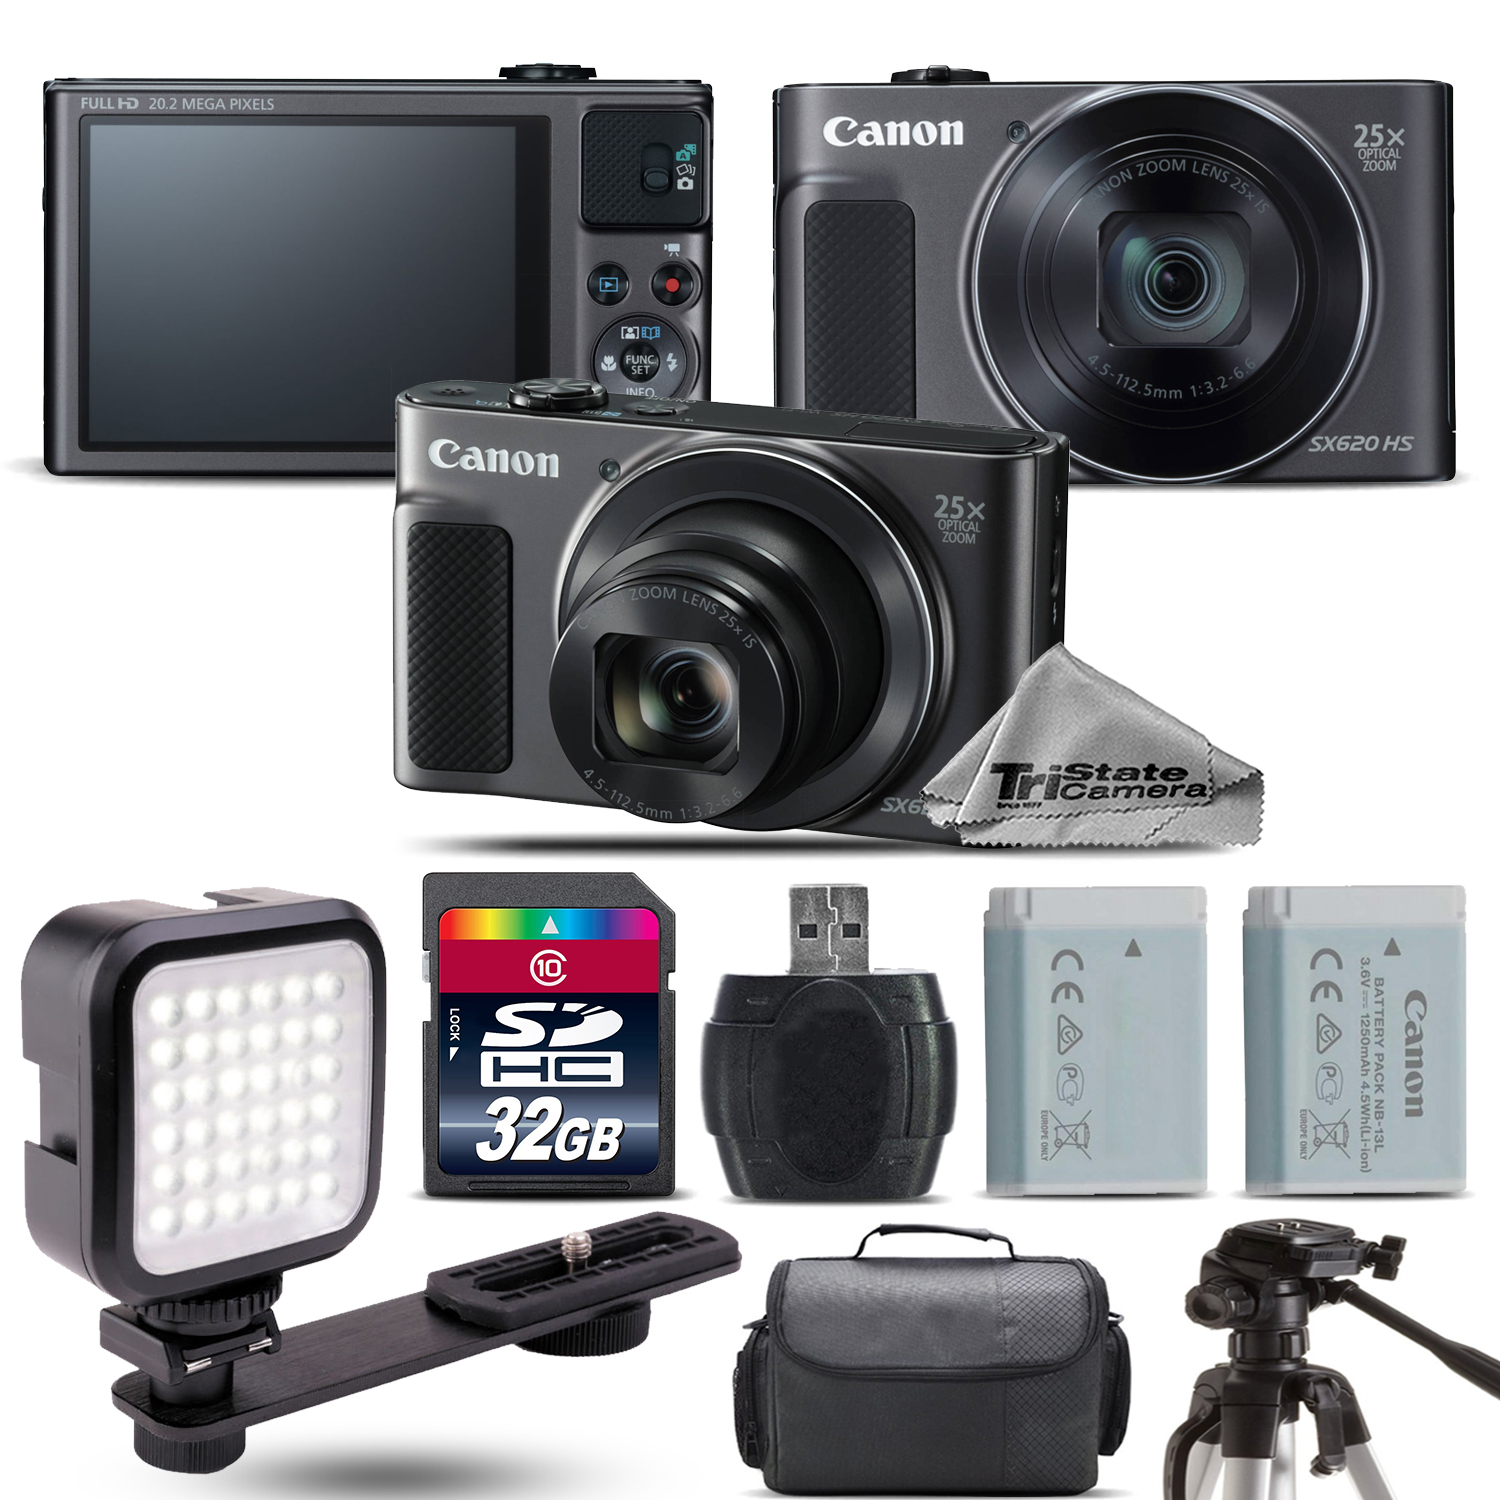 c588f7712 CANON - PowerShot SX620 HS Black Digital Camera + Extra Battery + LED -  32GB Kit  FREE SHIPPING